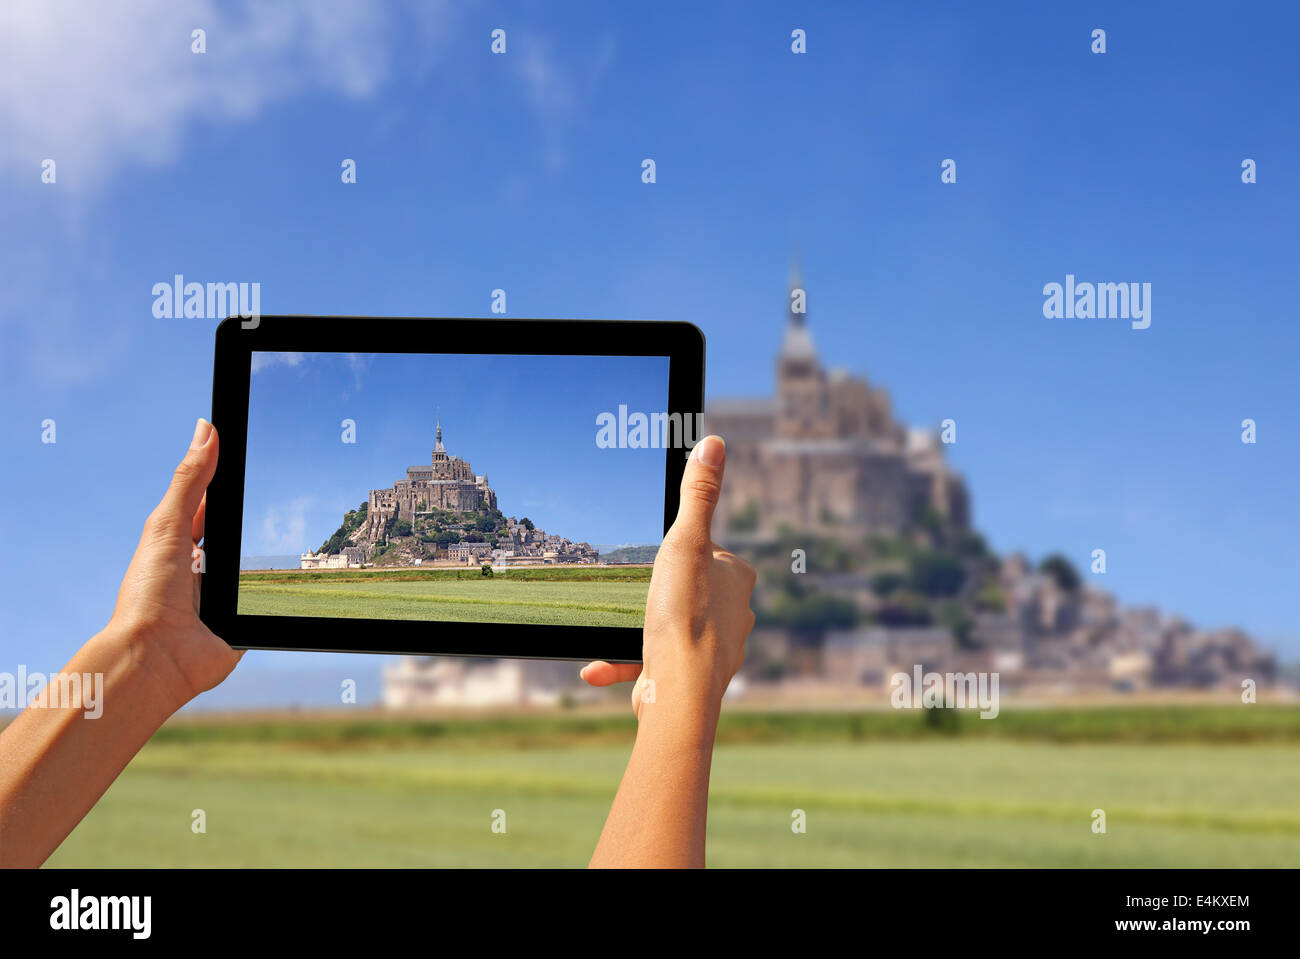 Girl taking pictures on a tablet, Le Mont Saint Michel Abbey, Normandy / Brittany, France - Stock Image